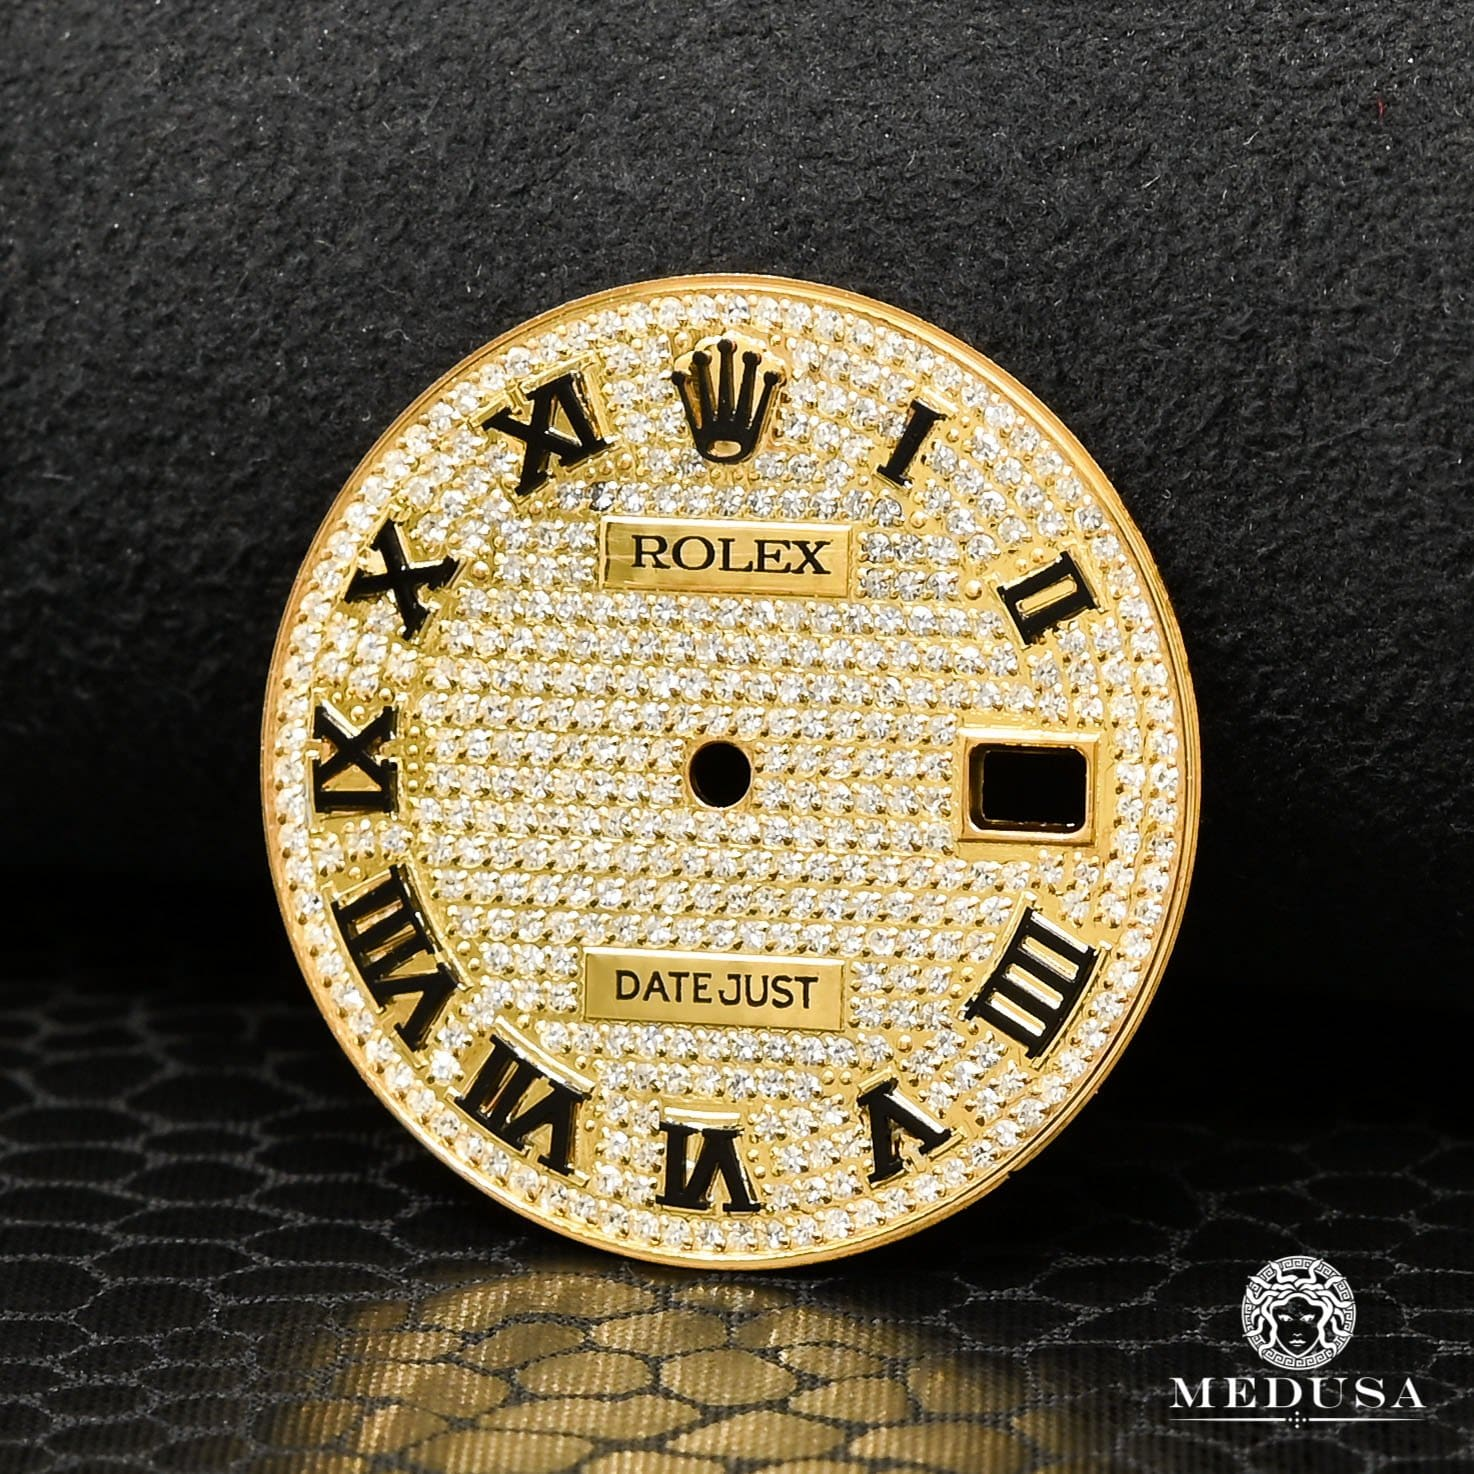 36mm Rolex Dial Gold Iced